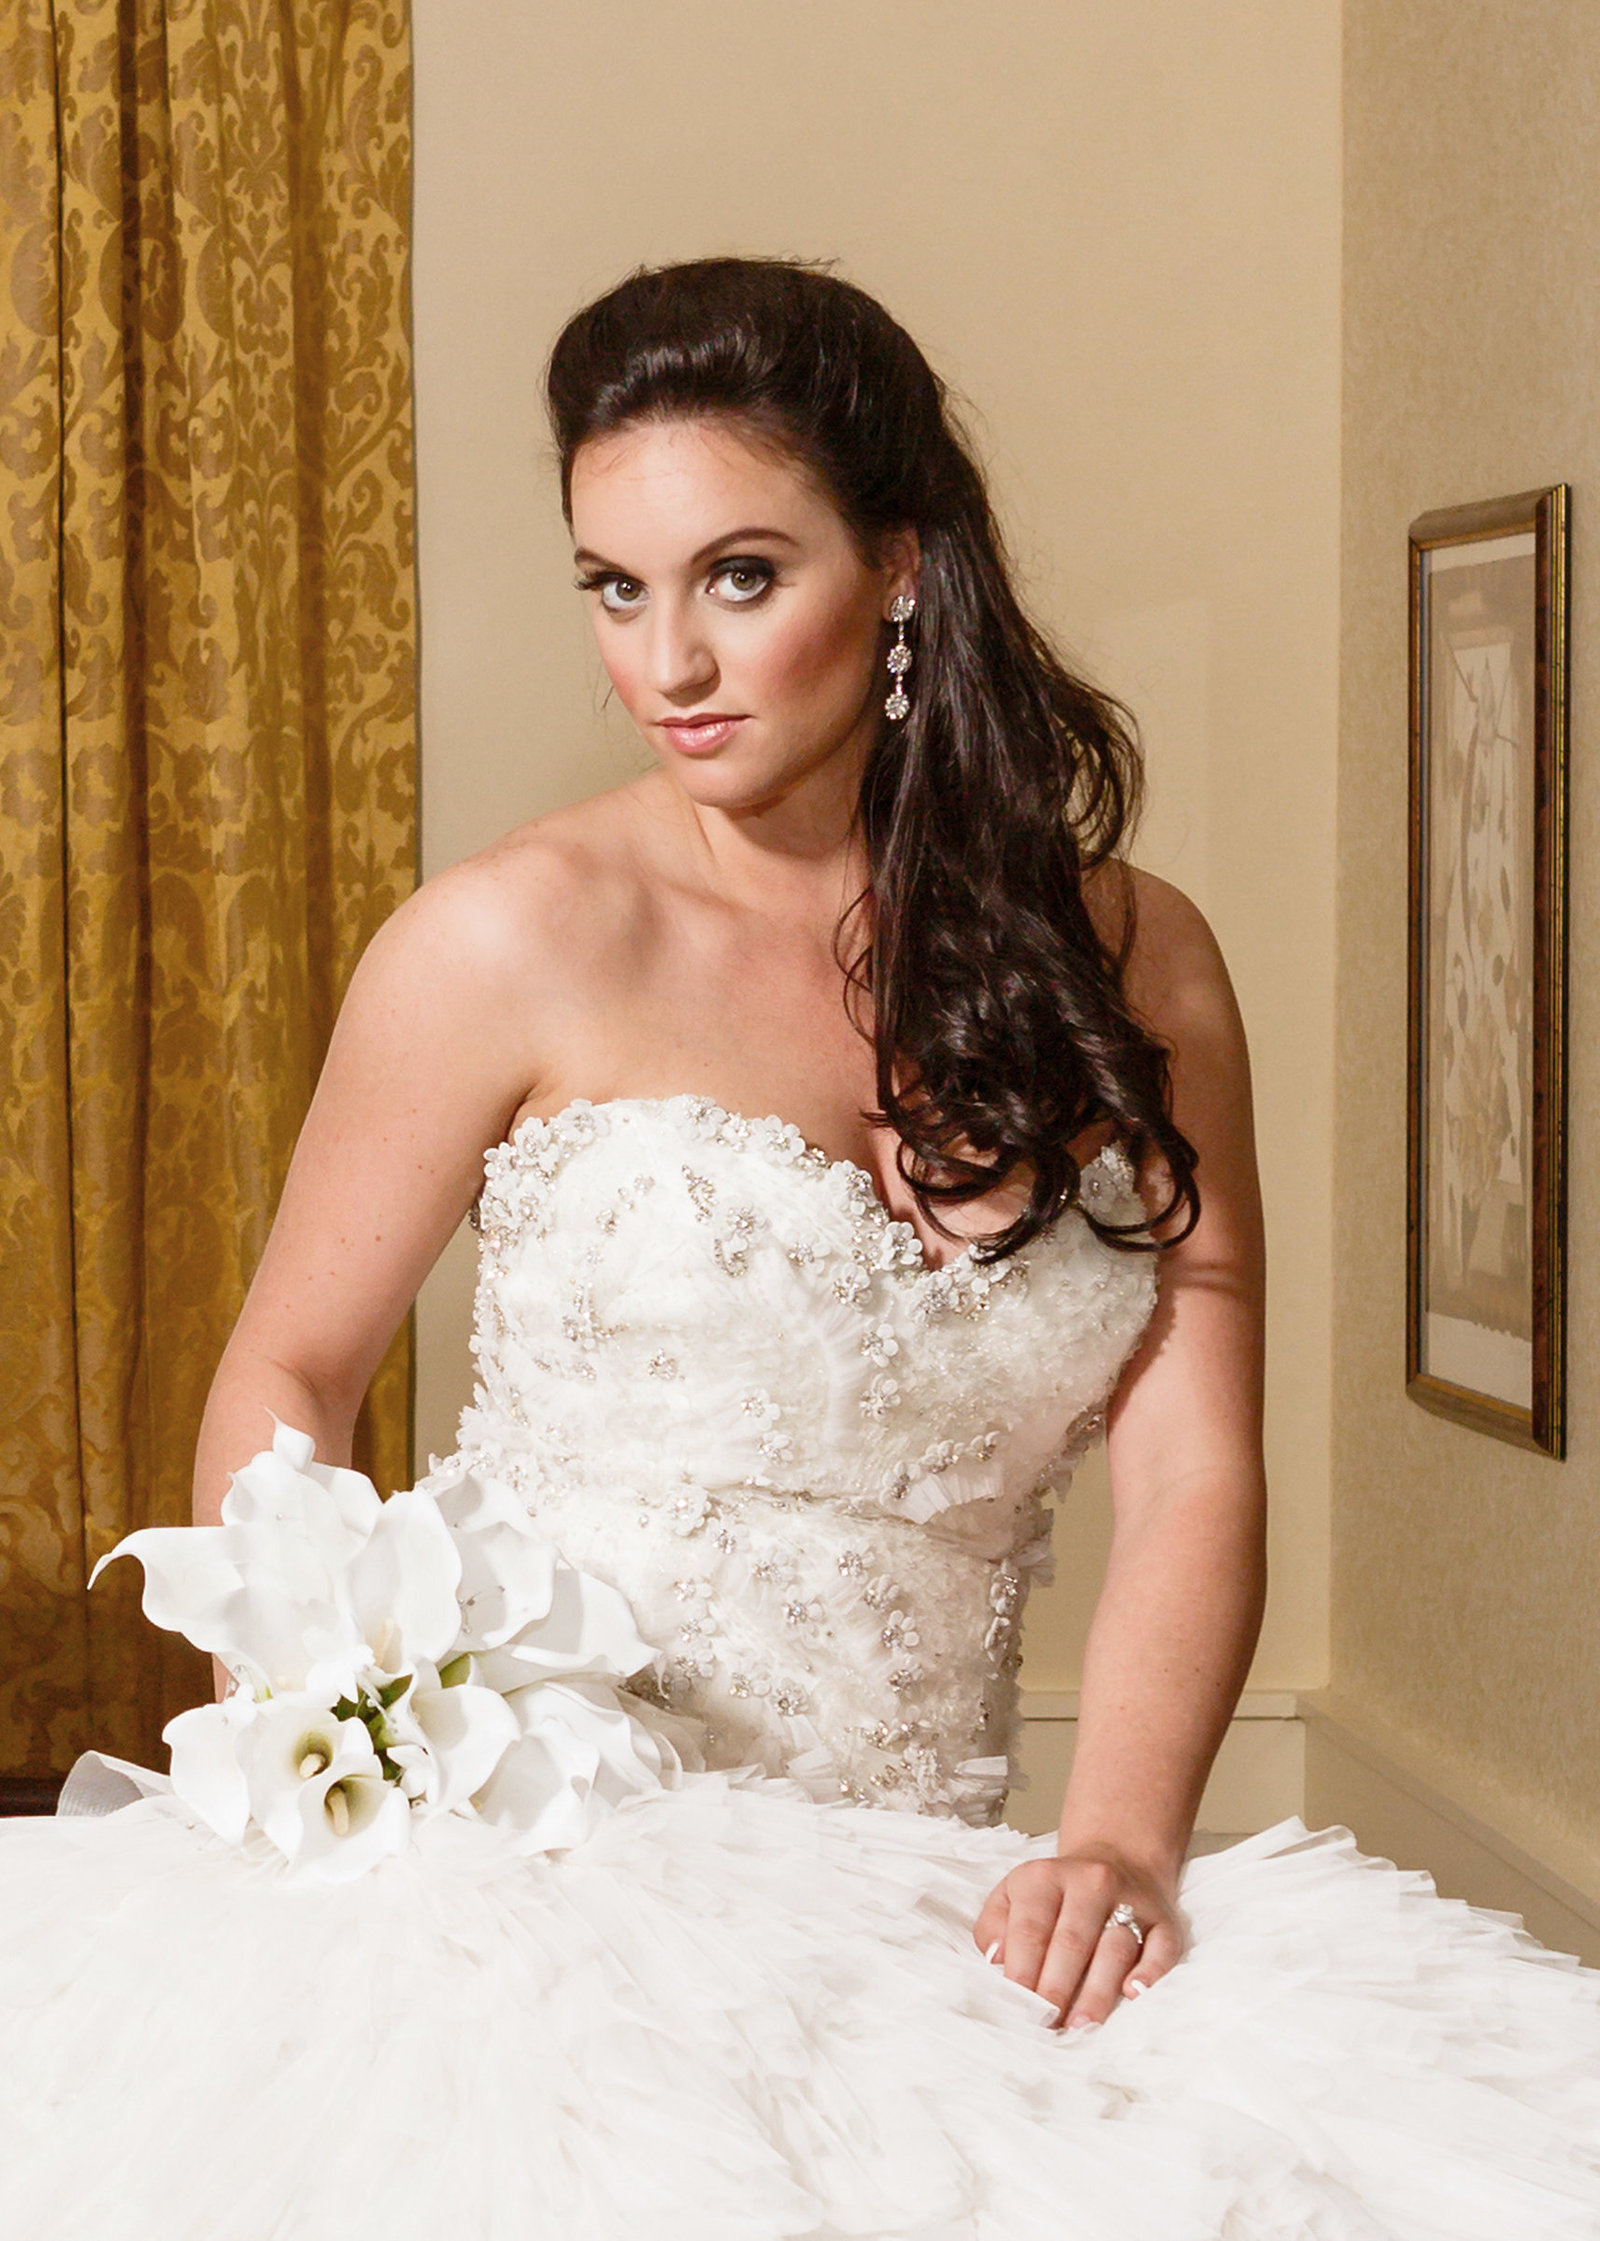 Logan Johns McConnell during her bridal portrait in the Presidential suite at The Battle House hotel in Mobile, Alabama.